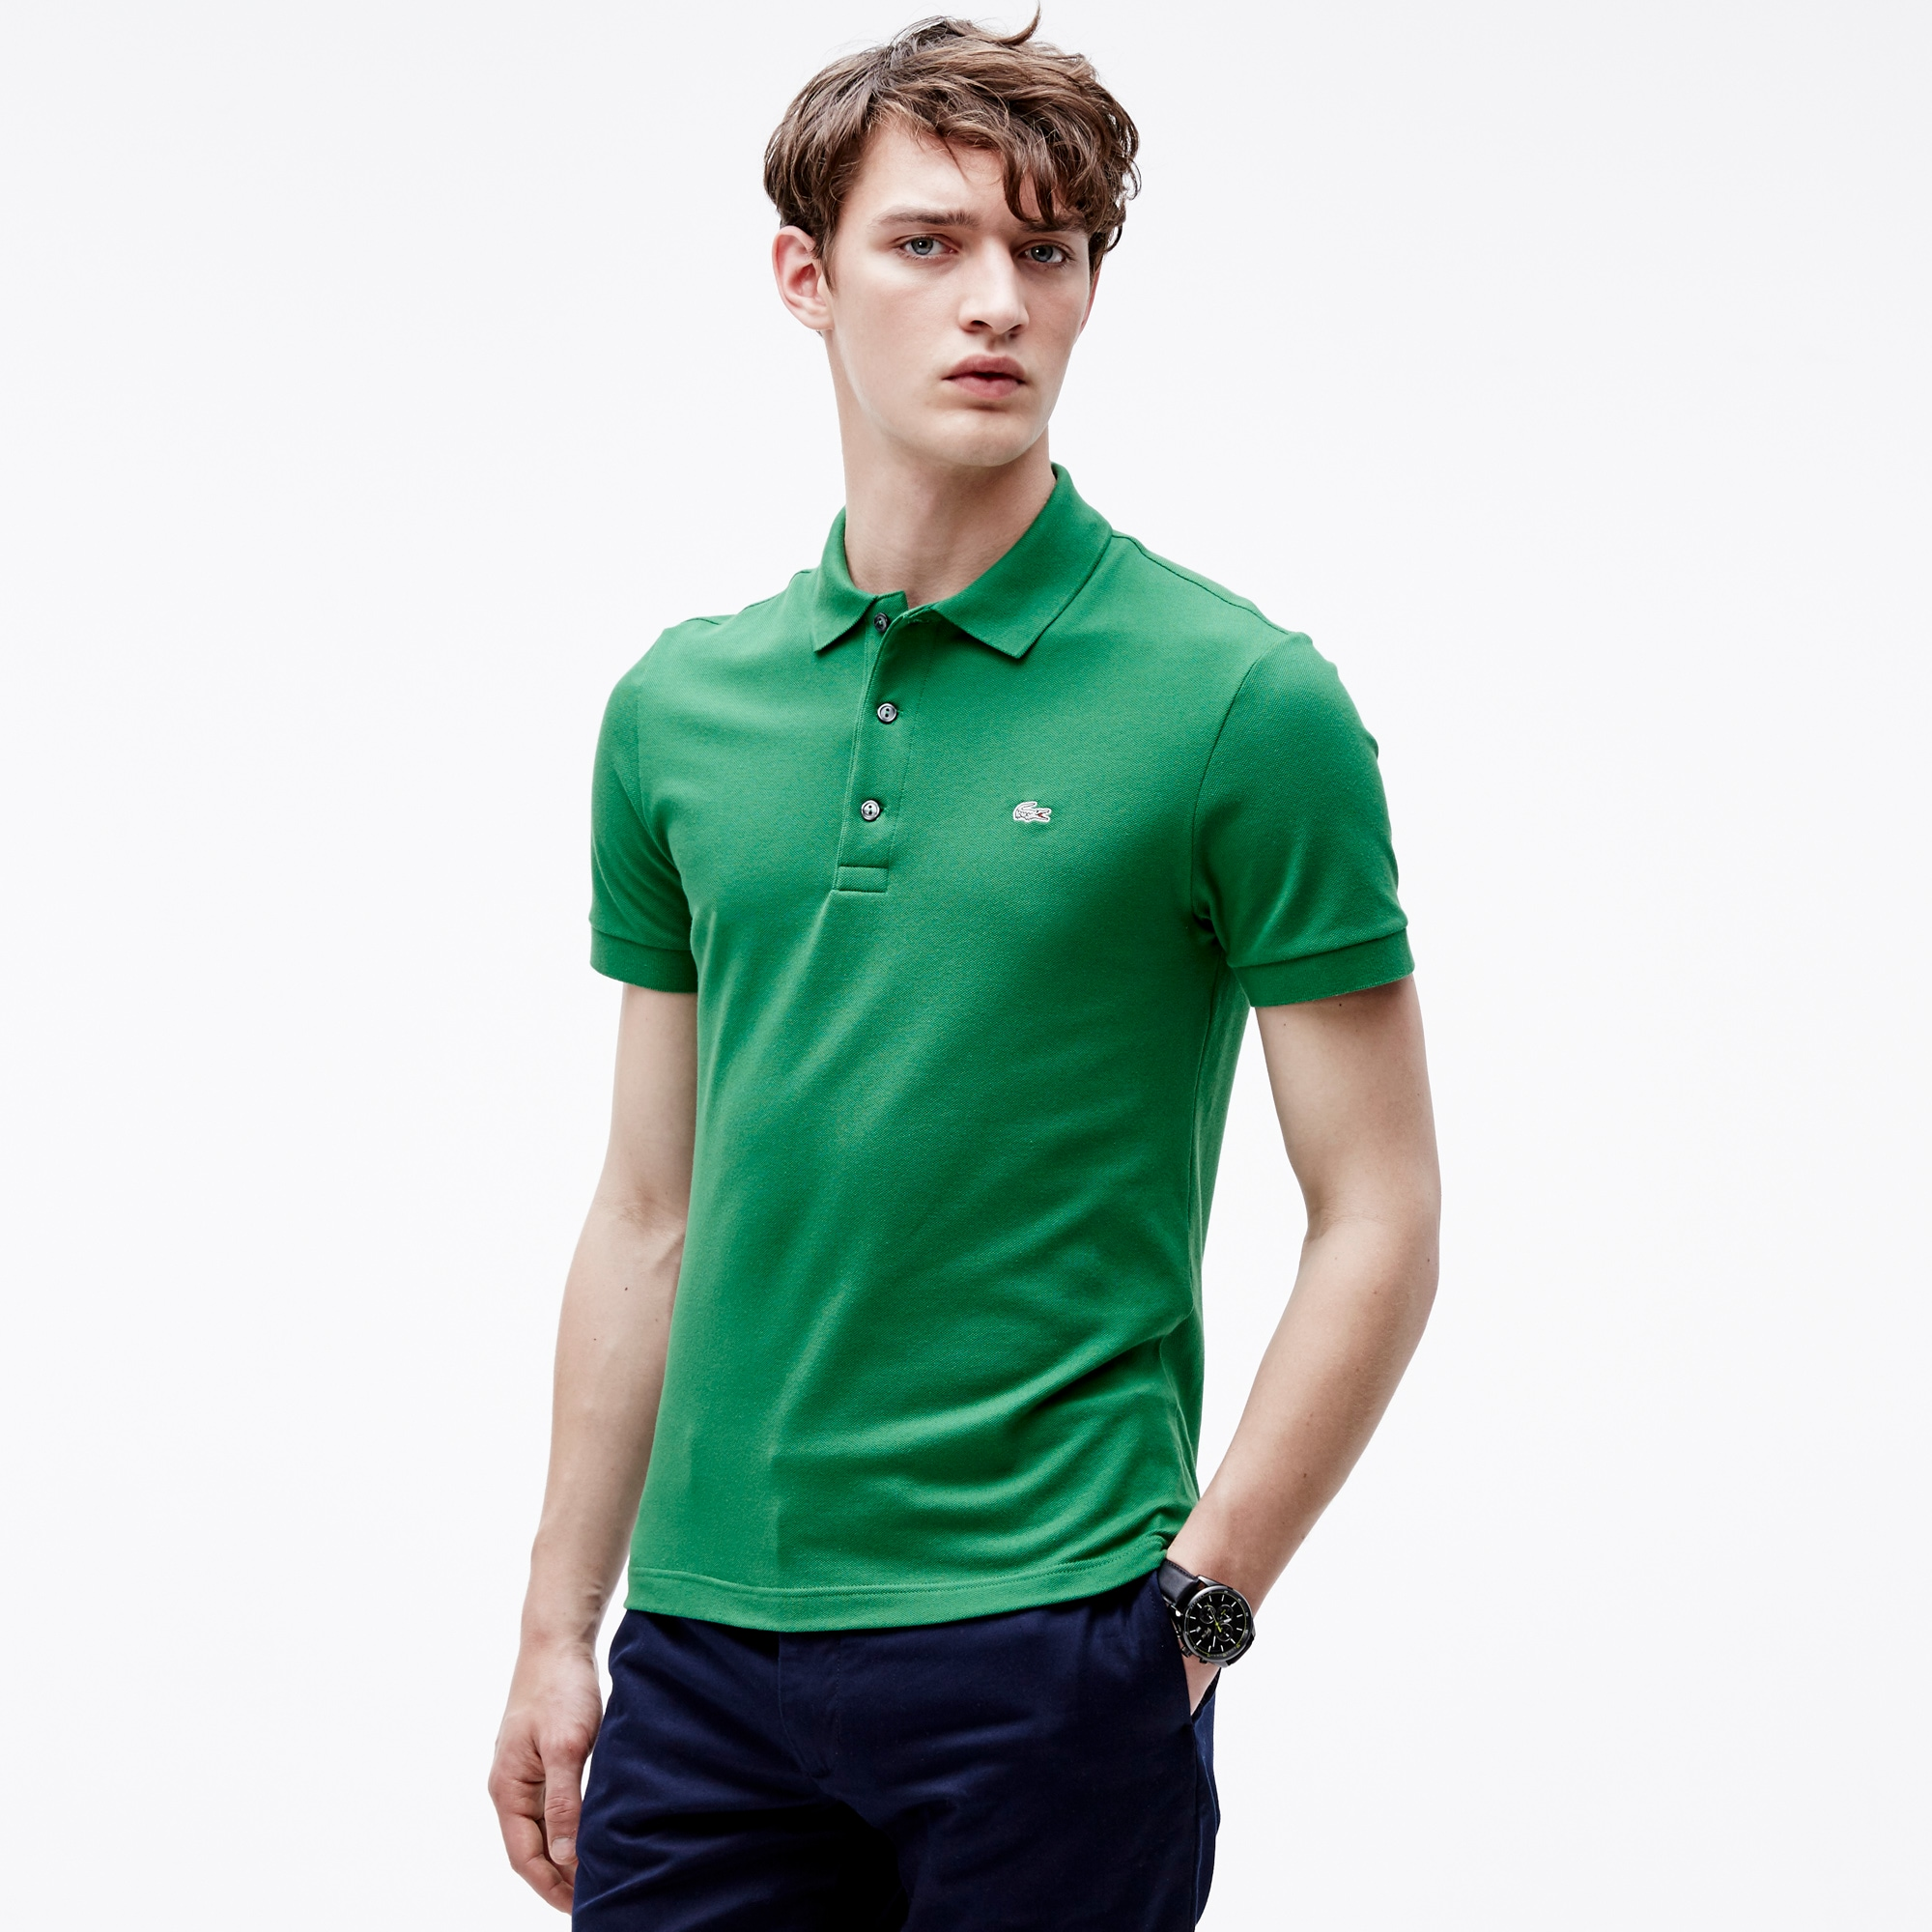 f2c916ca5 Men s Slim fit Lacoste Polo Shirt in stretch petit piqué